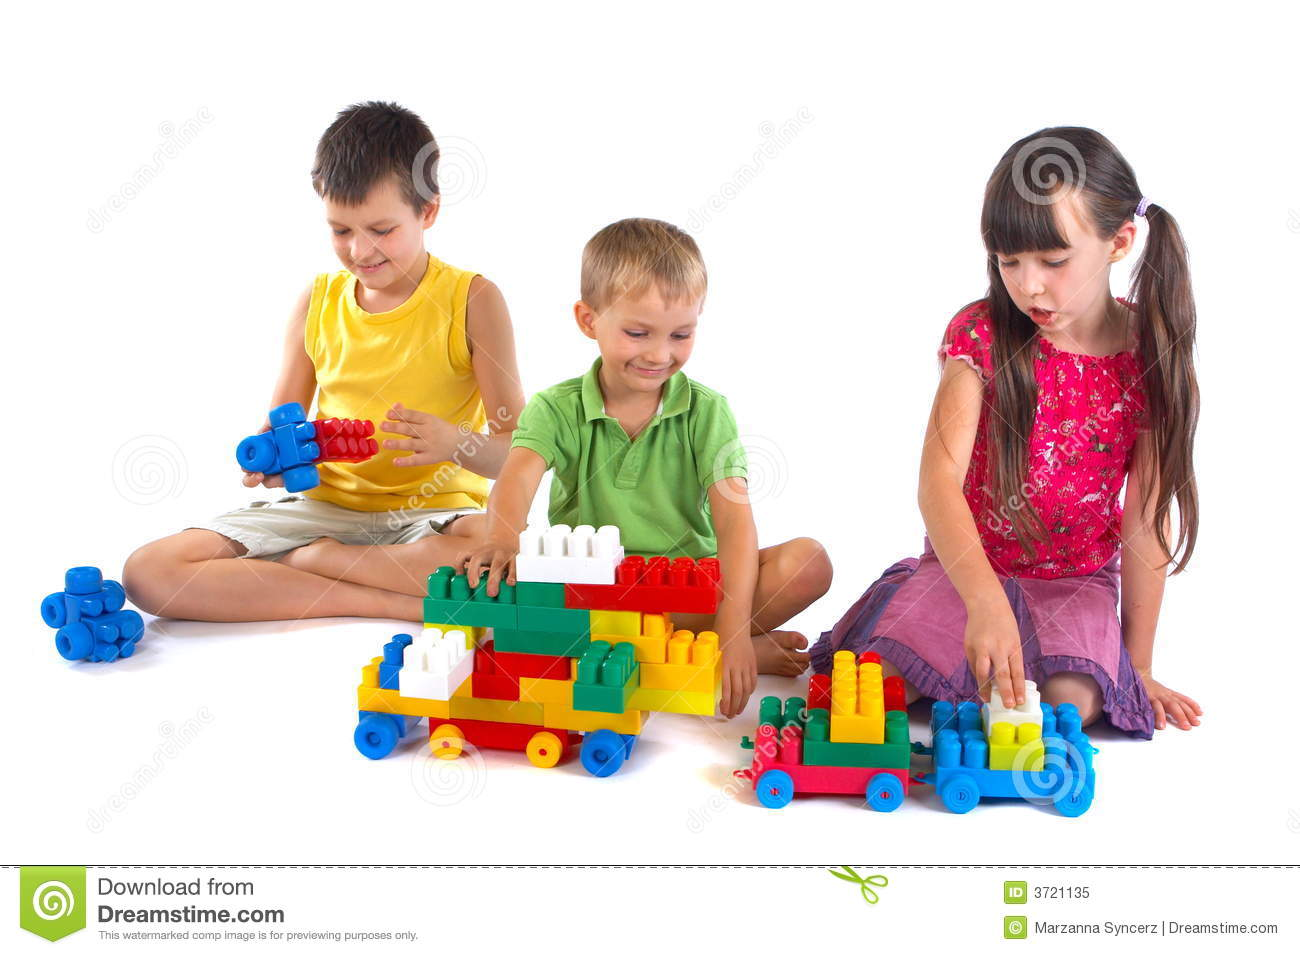 Https Www Dreamstime Com Royalty Free Stock Photo Playing Children Image3721135